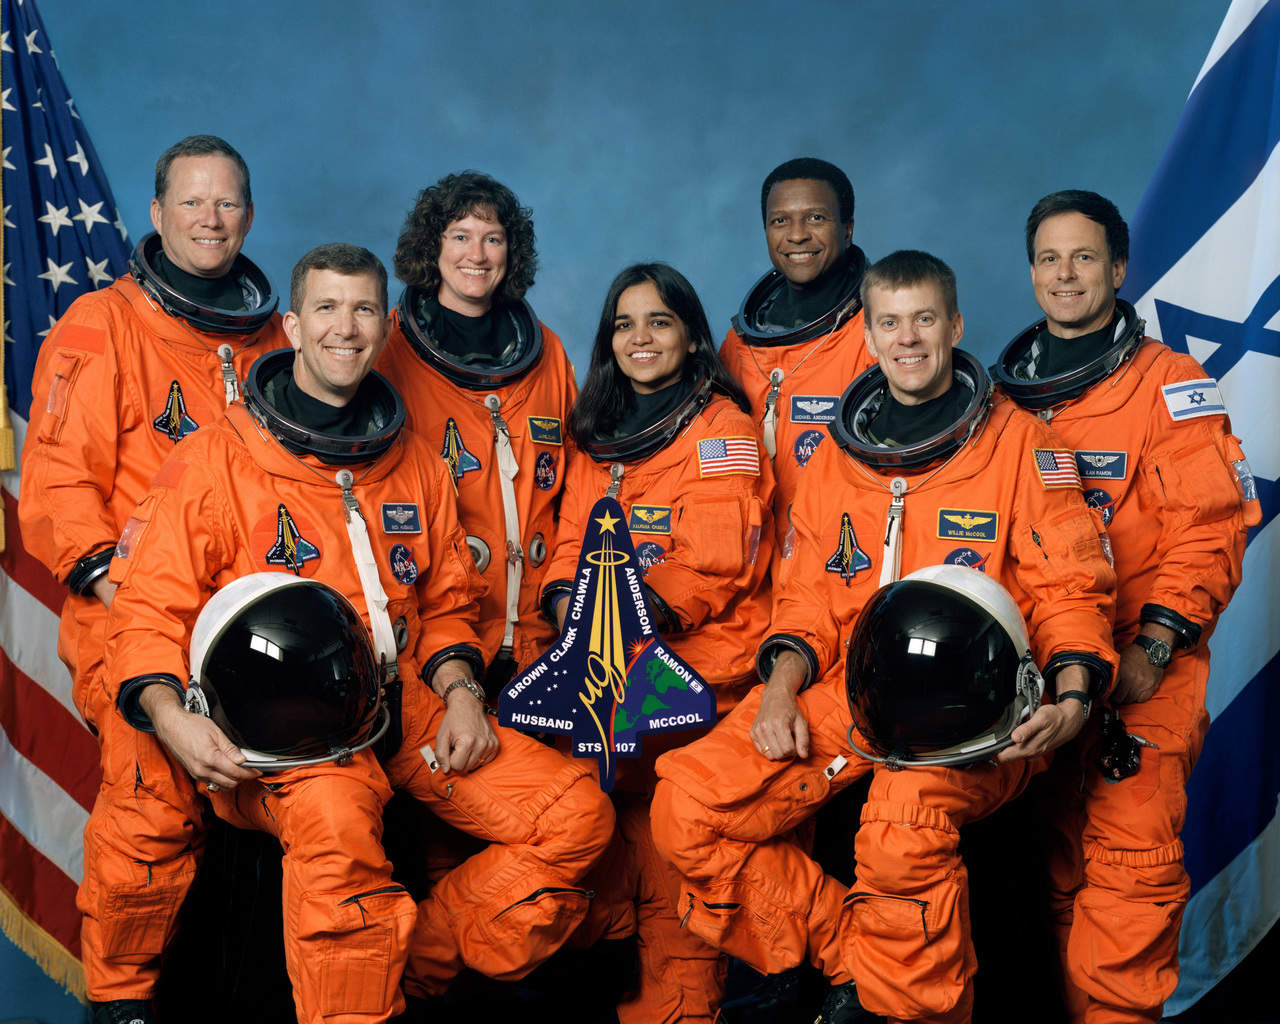 STS-107: 13 years ago today